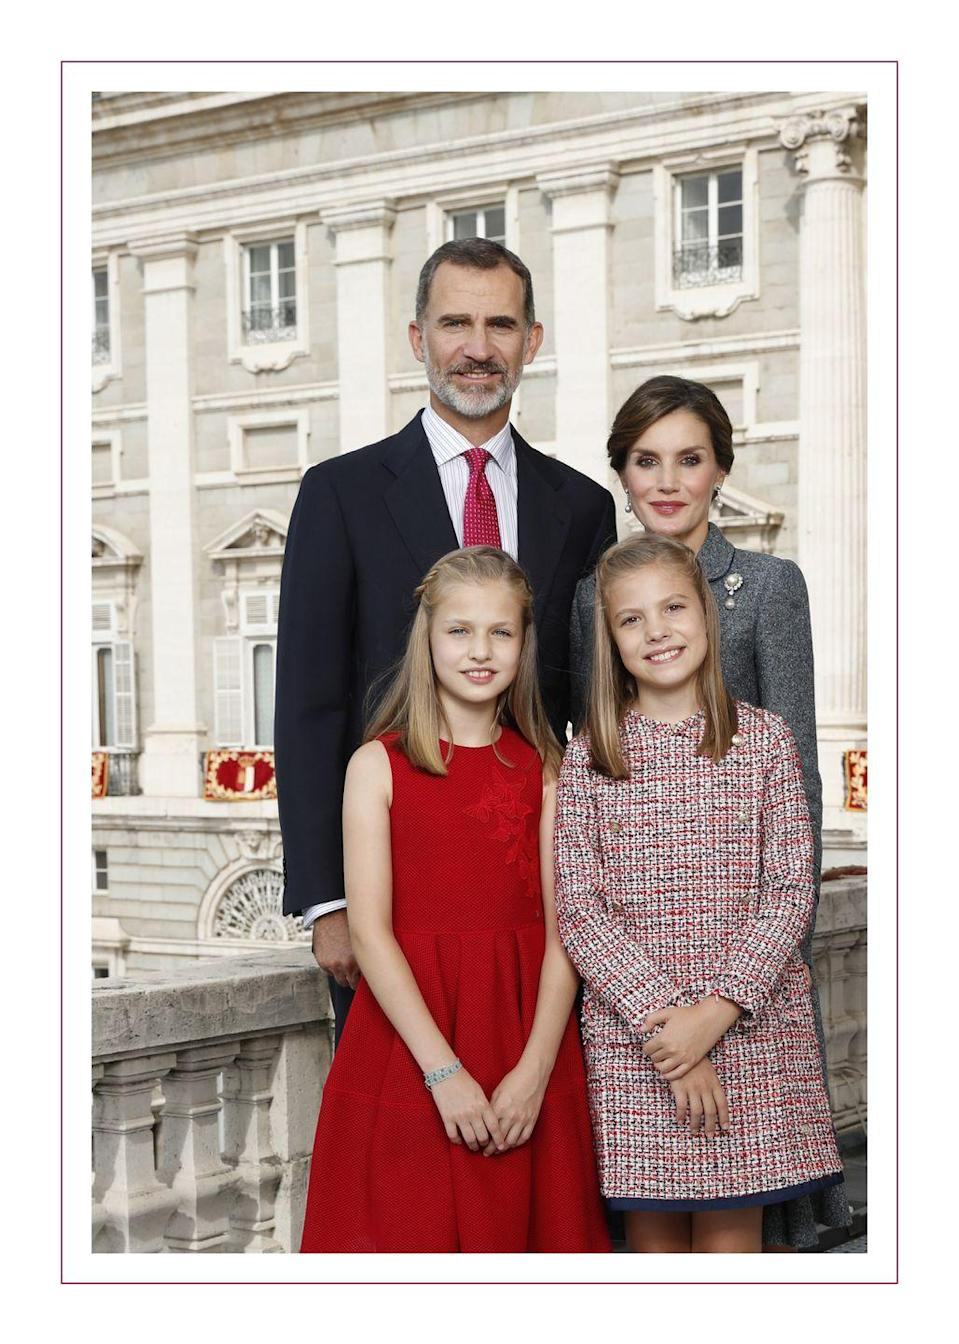 "<p>Queen Letizia <a href=""https://www.townandcountrymag.com/society/tradition/g14416793/spanish-royal-family-christmas-cards/"" rel=""nofollow noopener"" target=""_blank"" data-ylk=""slk:posed for a Christmas portrait"" class=""link rapid-noclick-resp"">posed for a Christmas portrait</a> alongside her husband, Felipe, and their daughters Leonor and Sofia. </p>"